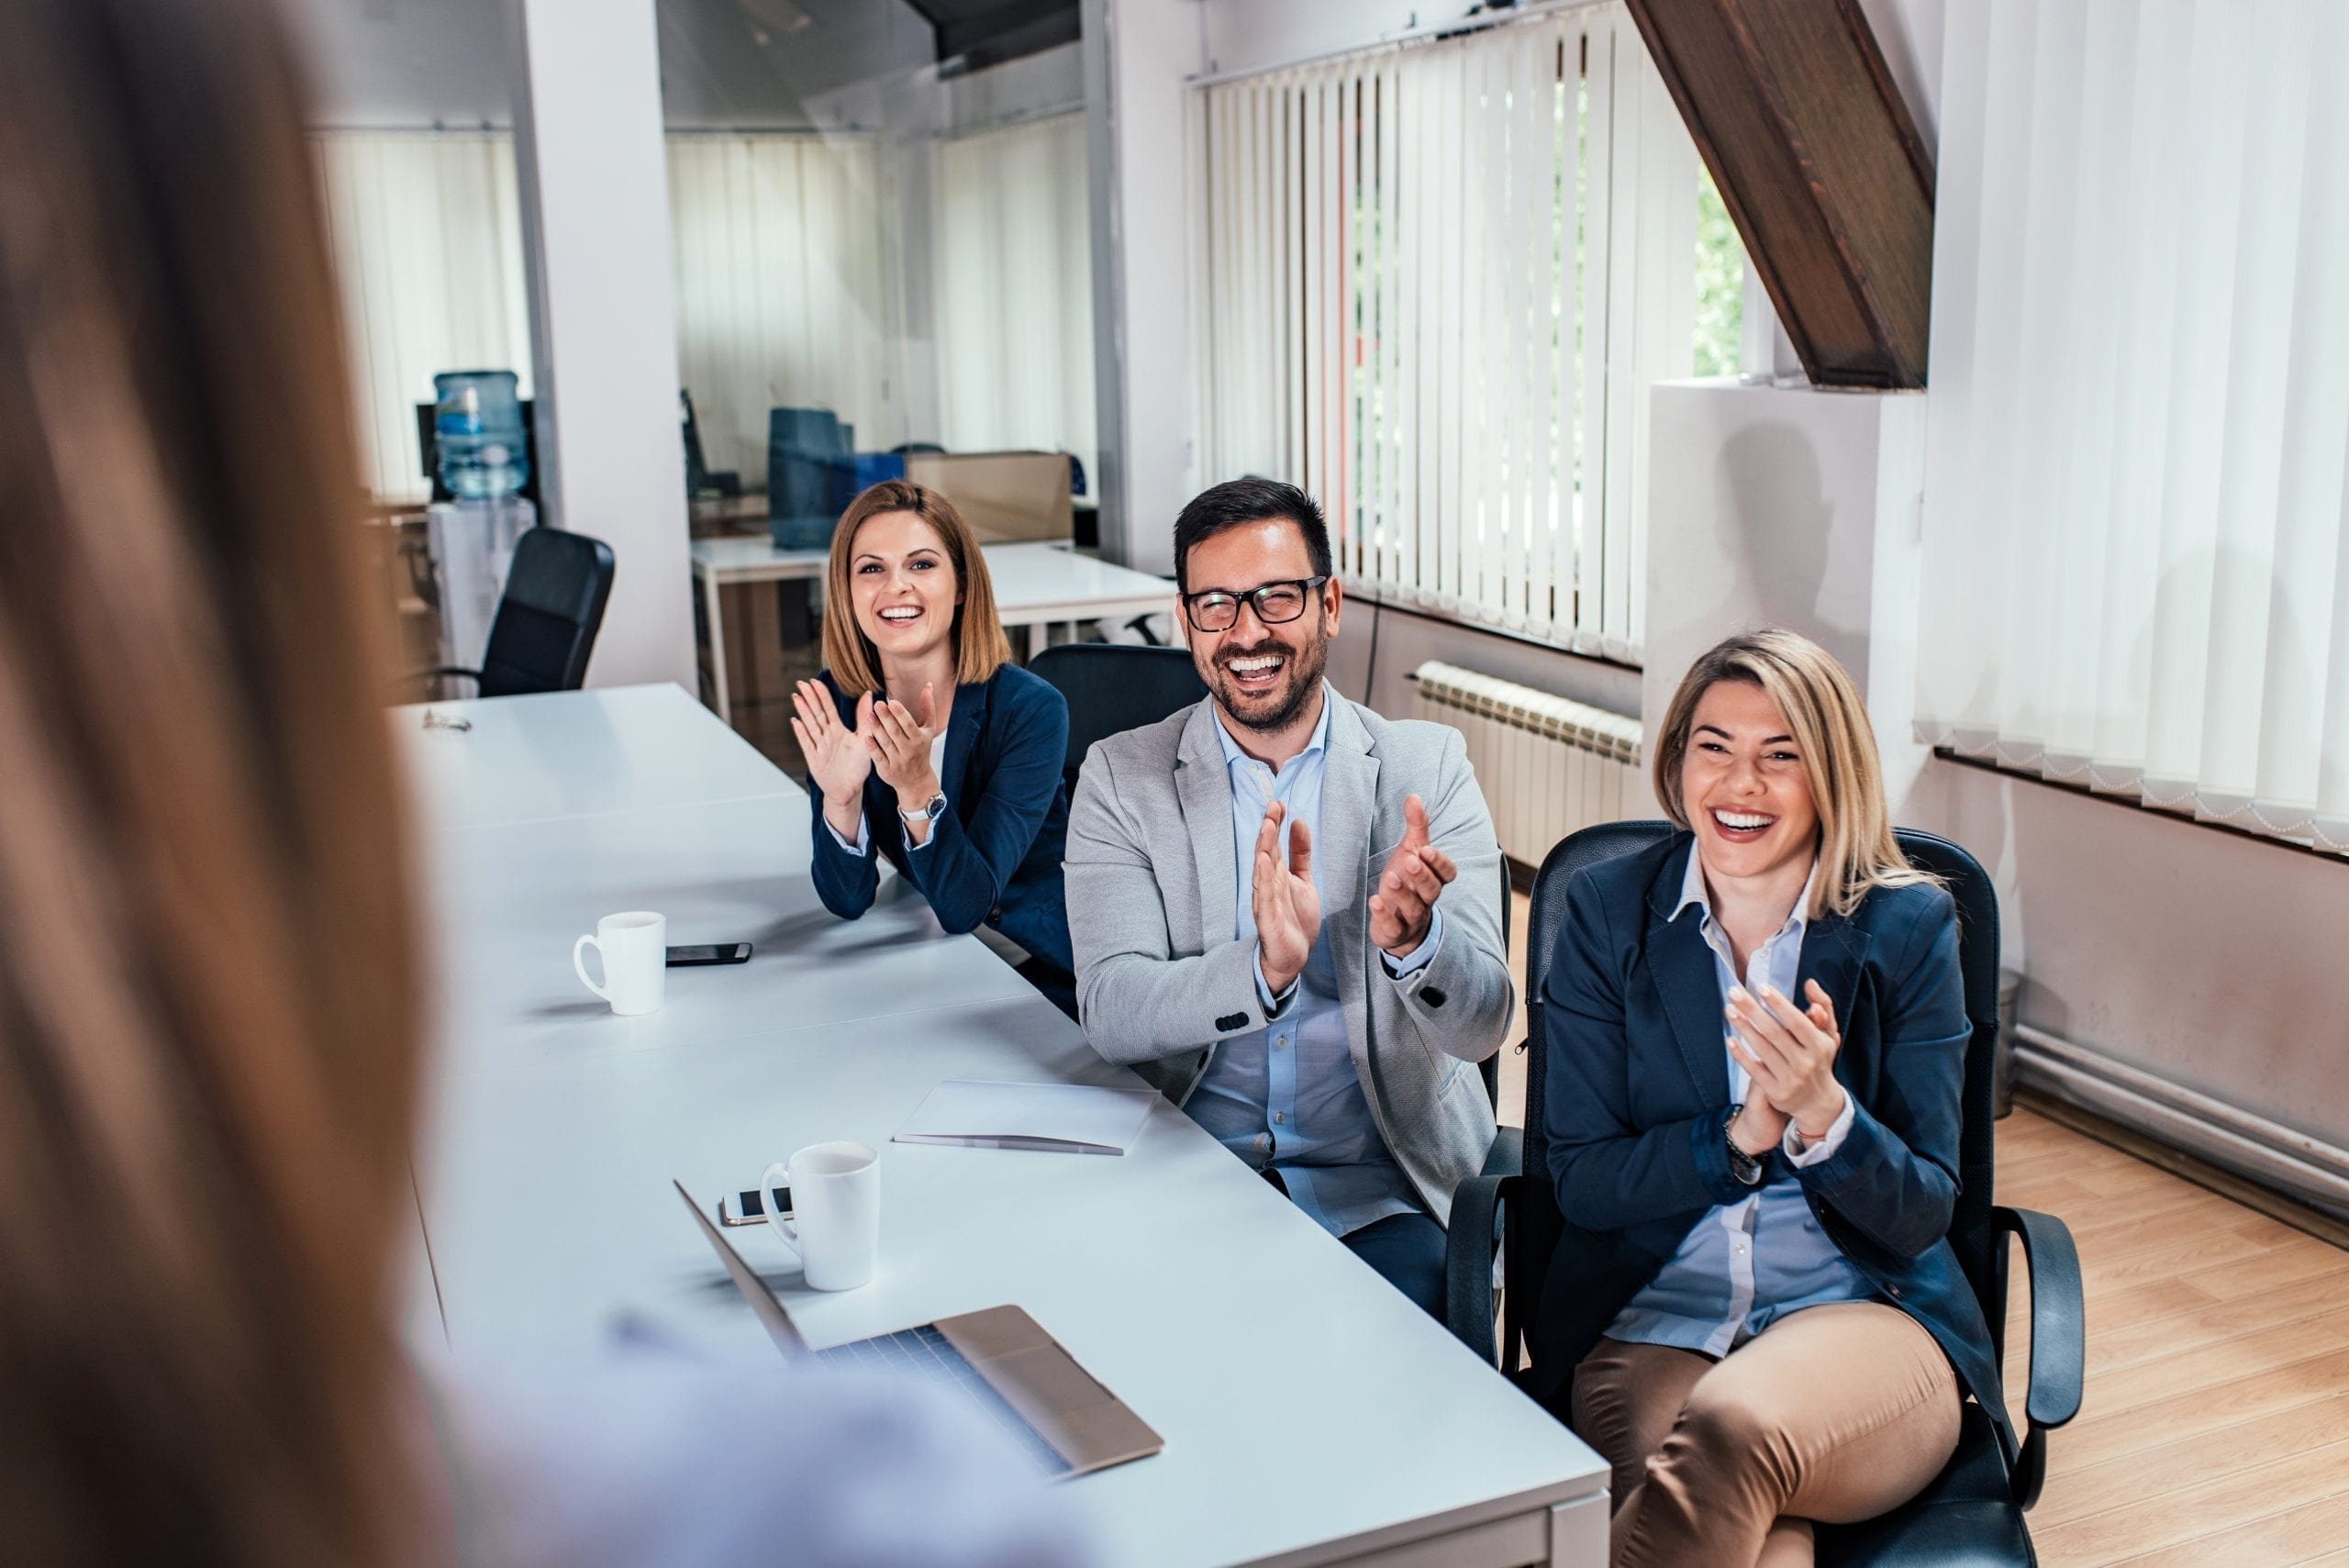 5 Ways to Recognize Your Team for Employee Appreciation Day